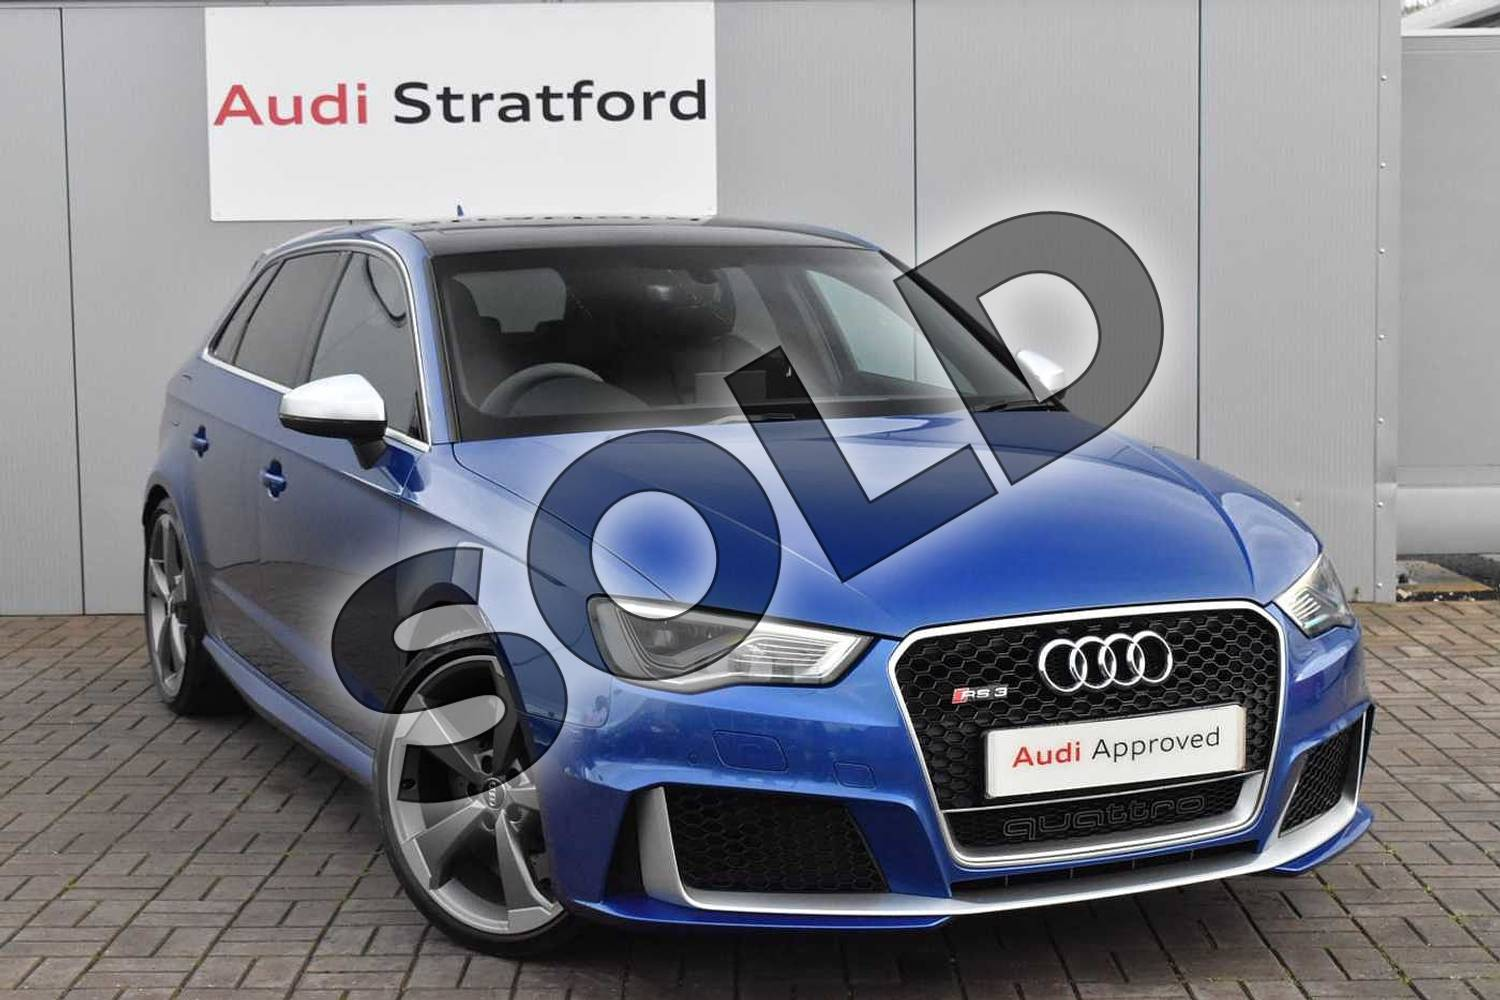 2016 Audi RS 3 Sportback RS 3 2.5 TFSI RS 3 Quattro 5dr S Tronic (Nav) in Sepang Blue Pearlescent at Stratford Audi